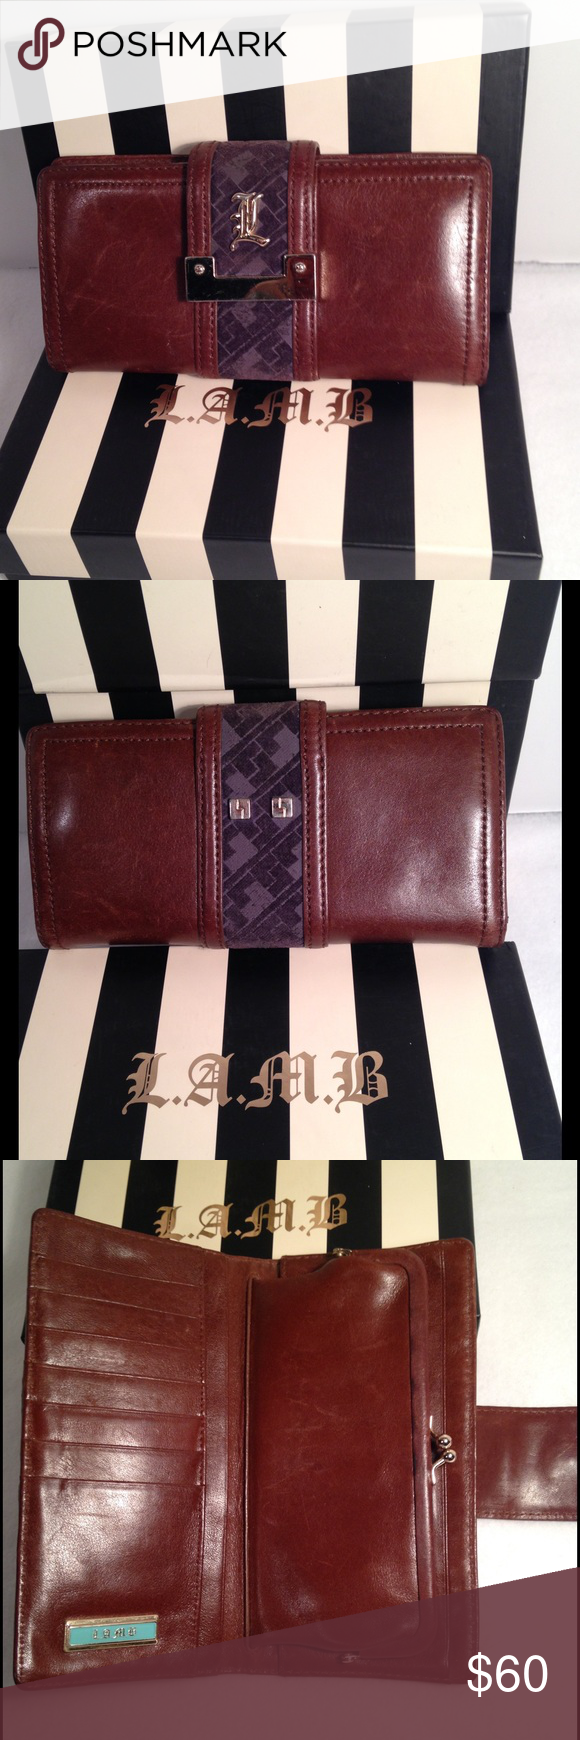 L.A.M.B. Clutch Wallet🌺 Luxurious wallet designed by Gwen Stefani. Genuine leather. Goldtone hardware. Striped interior. Many compartments for organization. Authentic and smokefree. Great condition with some preowned wear as pictured & some hardware scratches. No box. Please review all photos carefully and ask any questions prior to purchase.💋 L.A.M.B. Bags Wallets